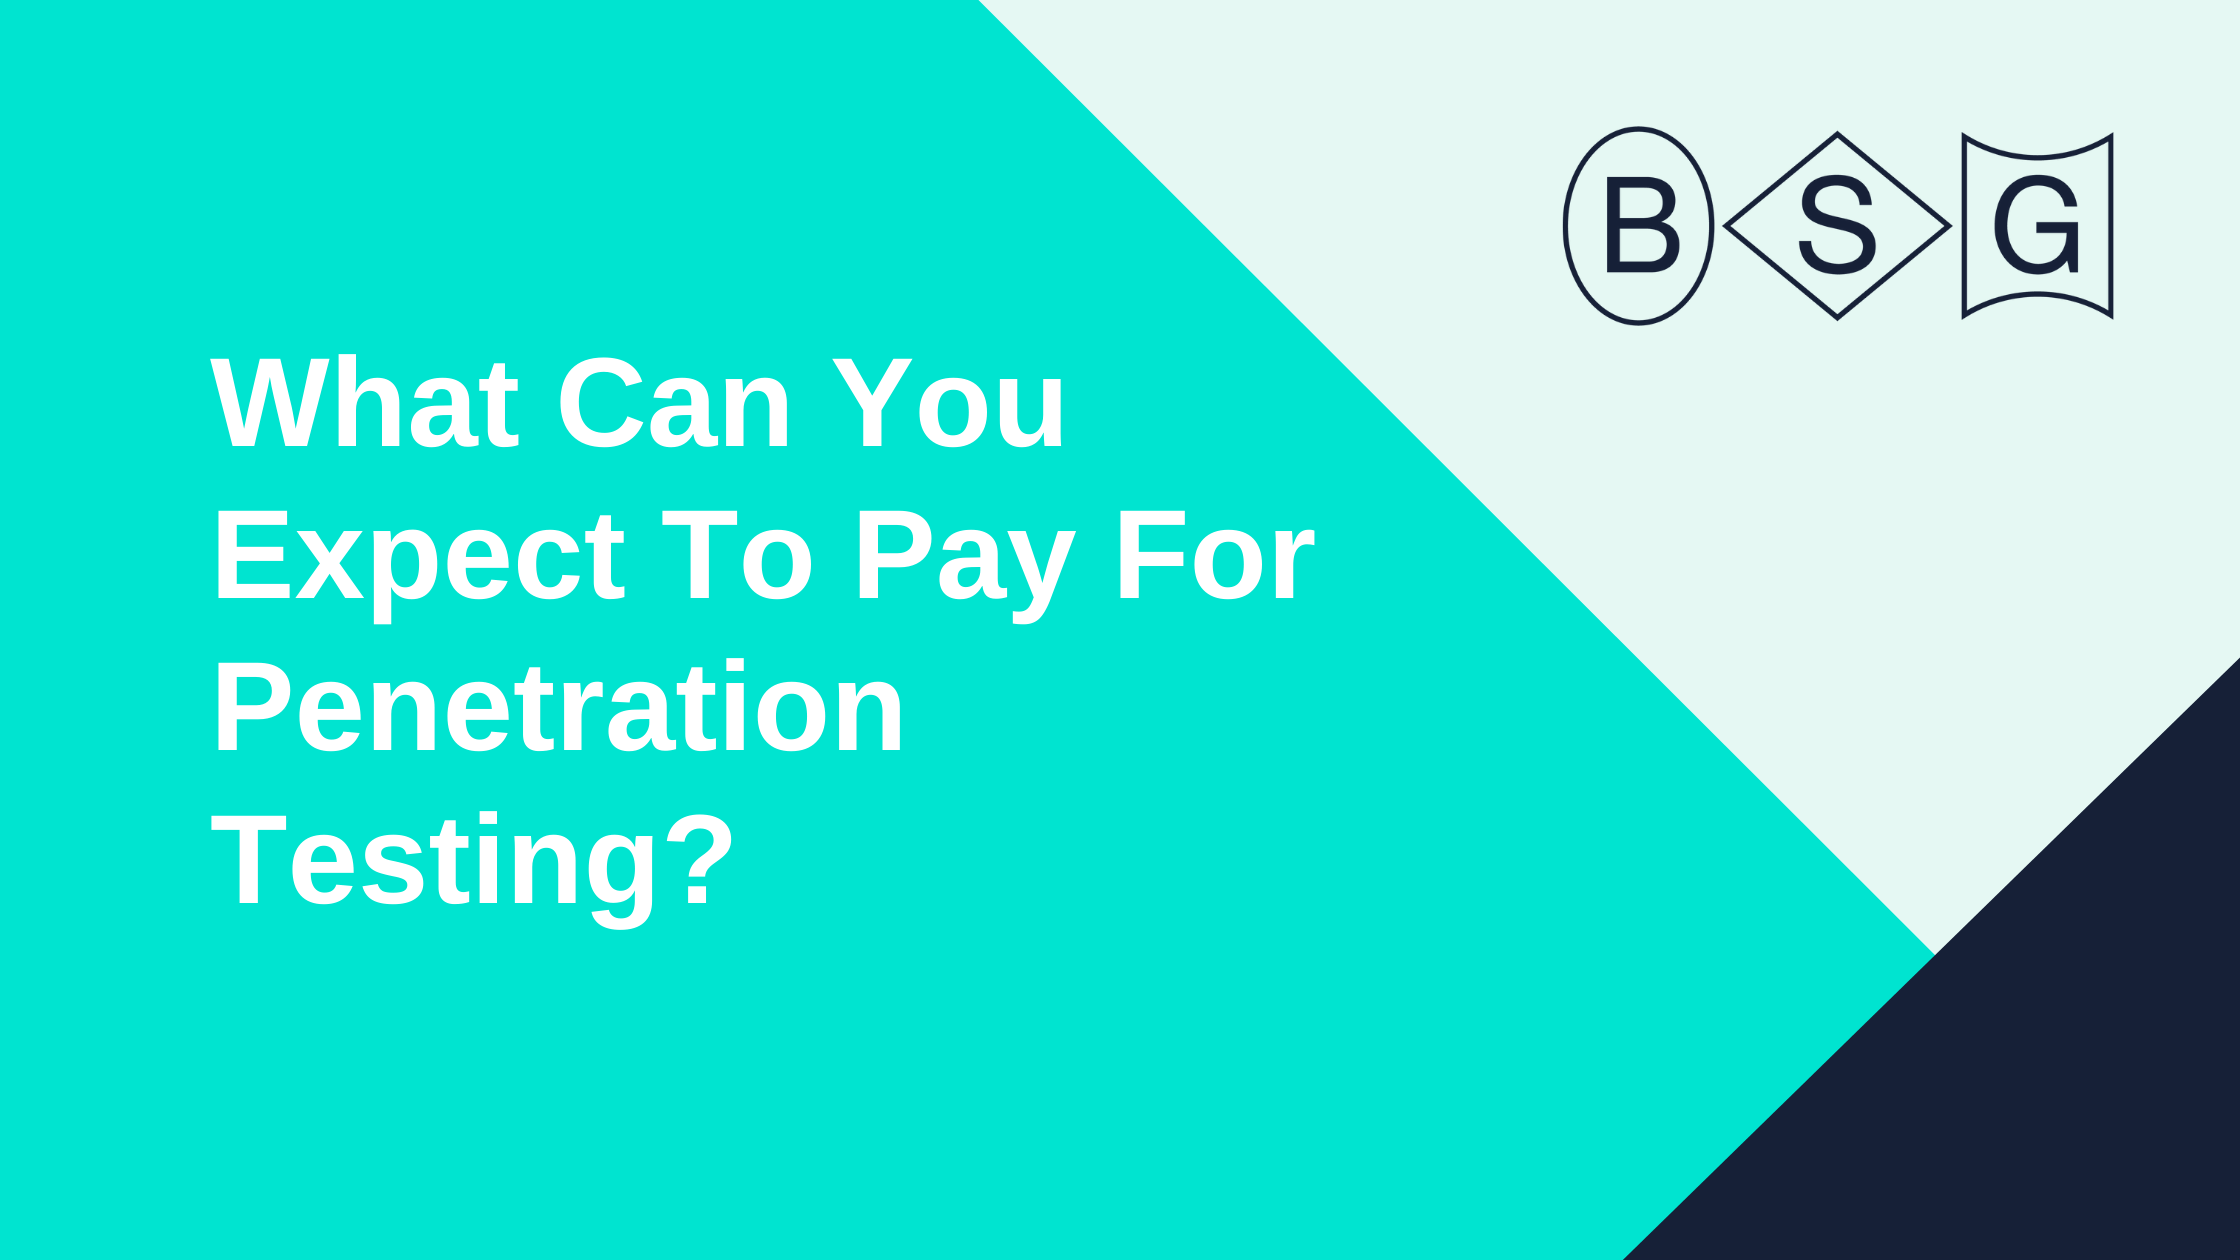 What Can You Expect To Pay For Penetration Testing